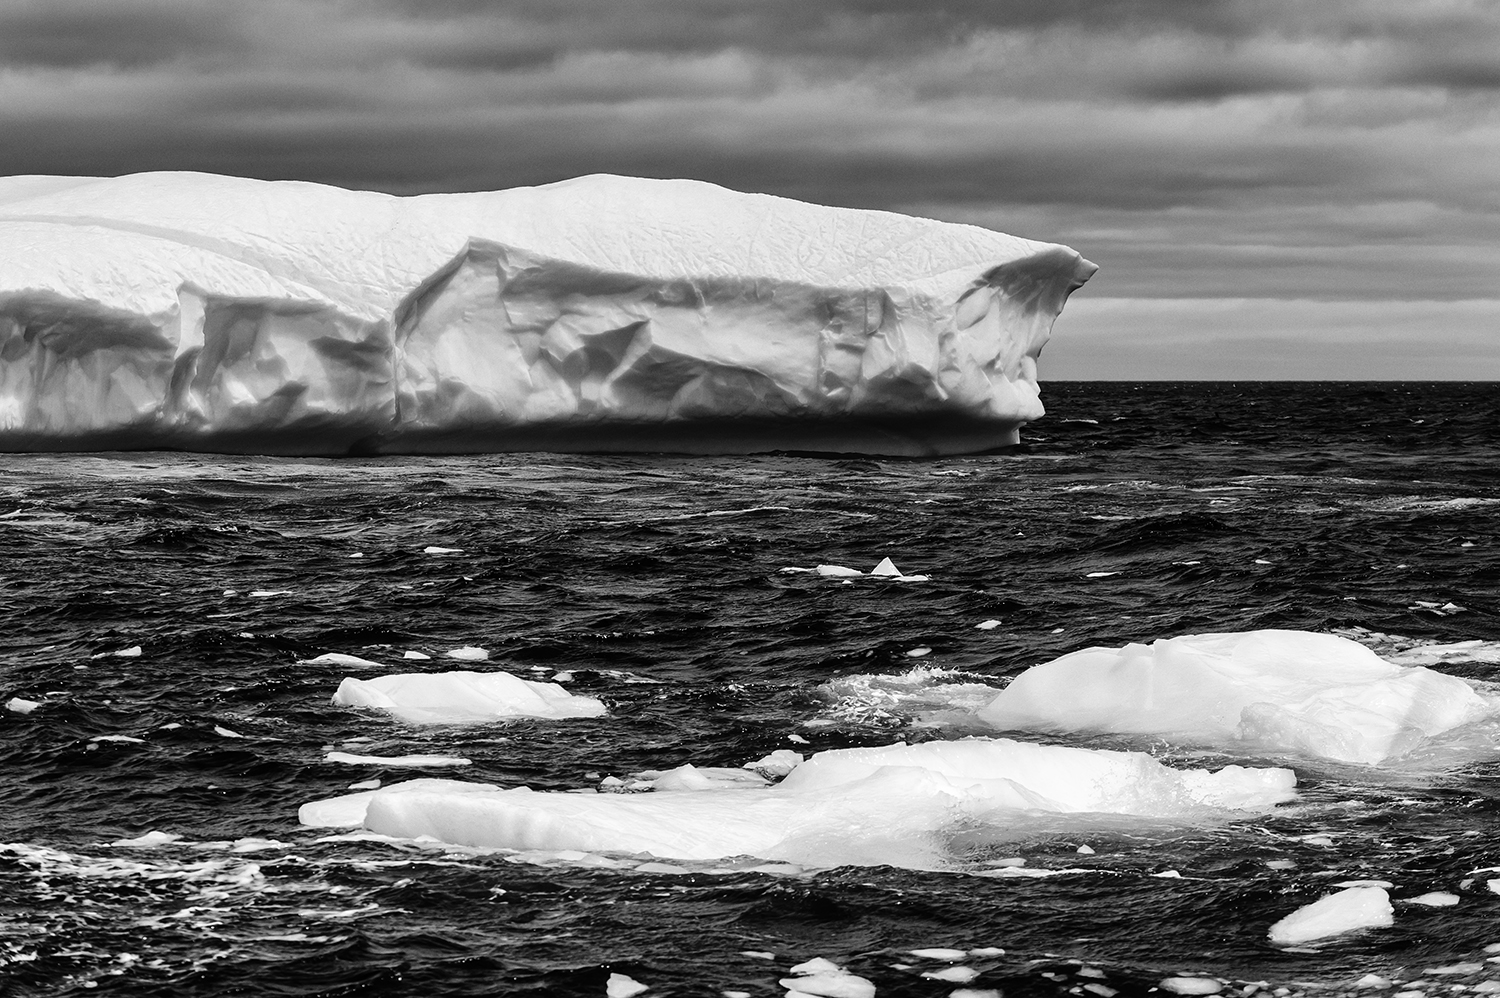 Newfoundland, CanadaImage no: 19-004476-bw  Click HERE to Add to Cart